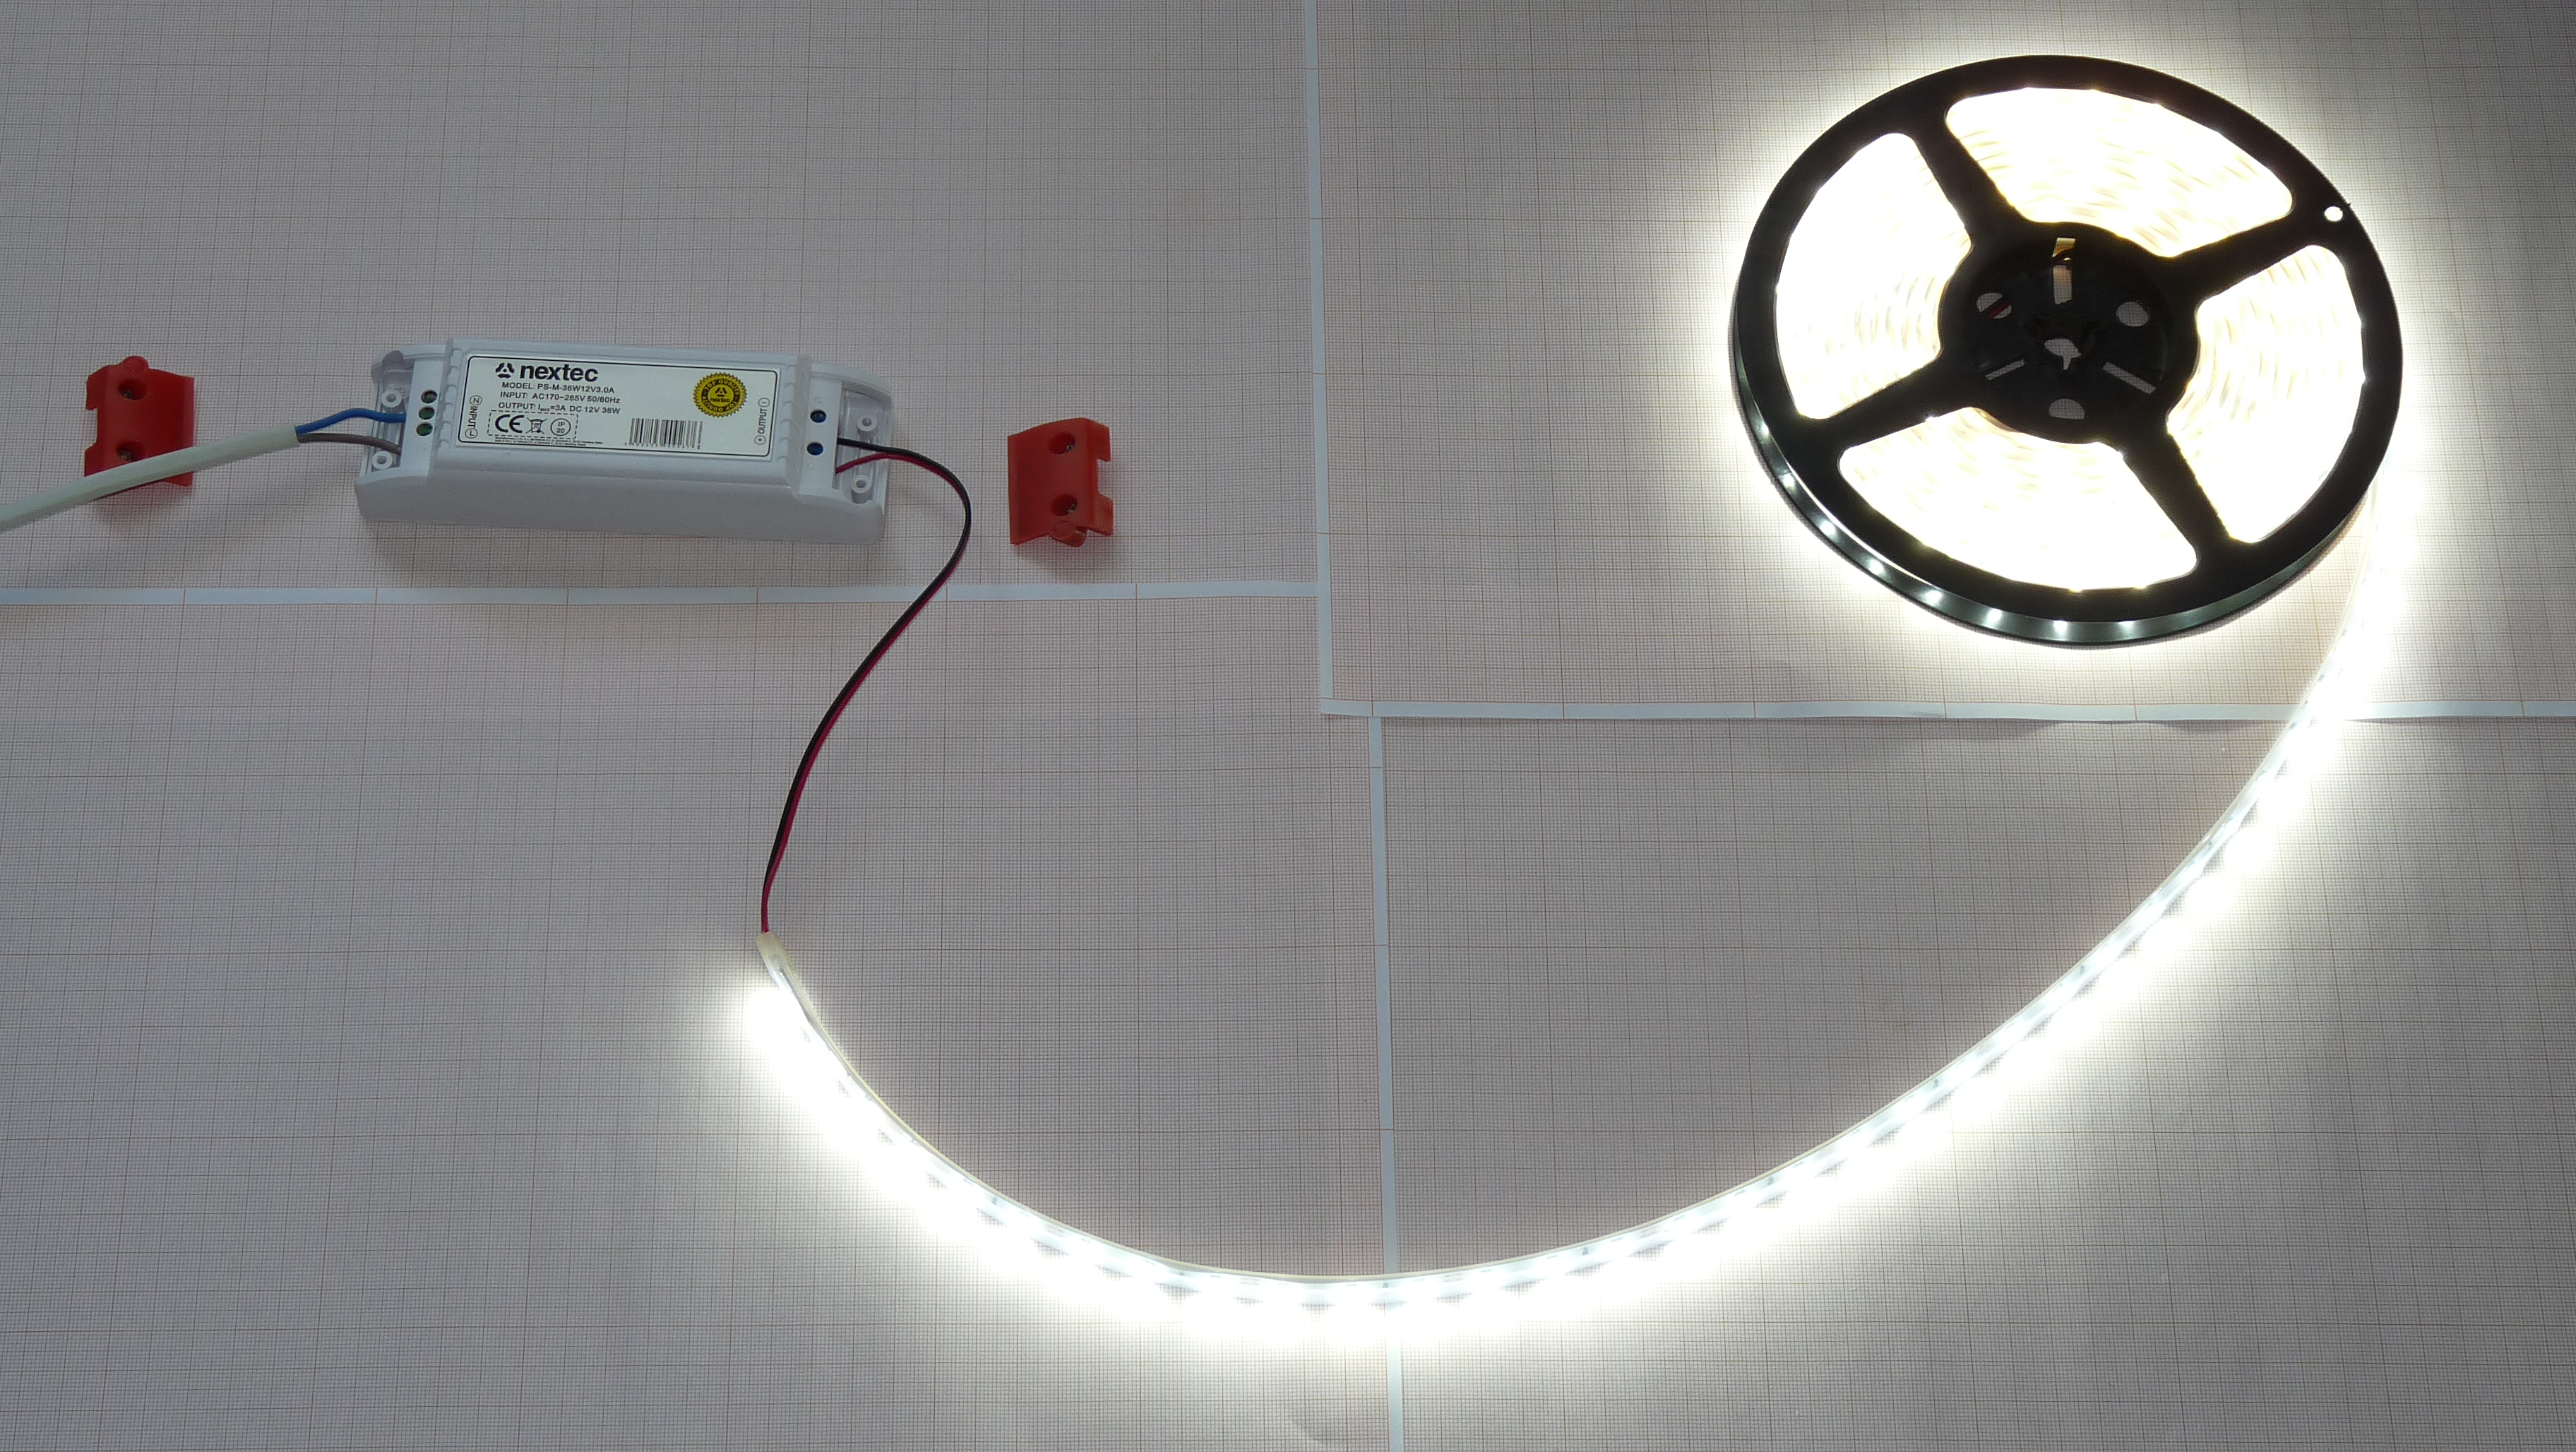 Wiring Led Strip Lights To Mains